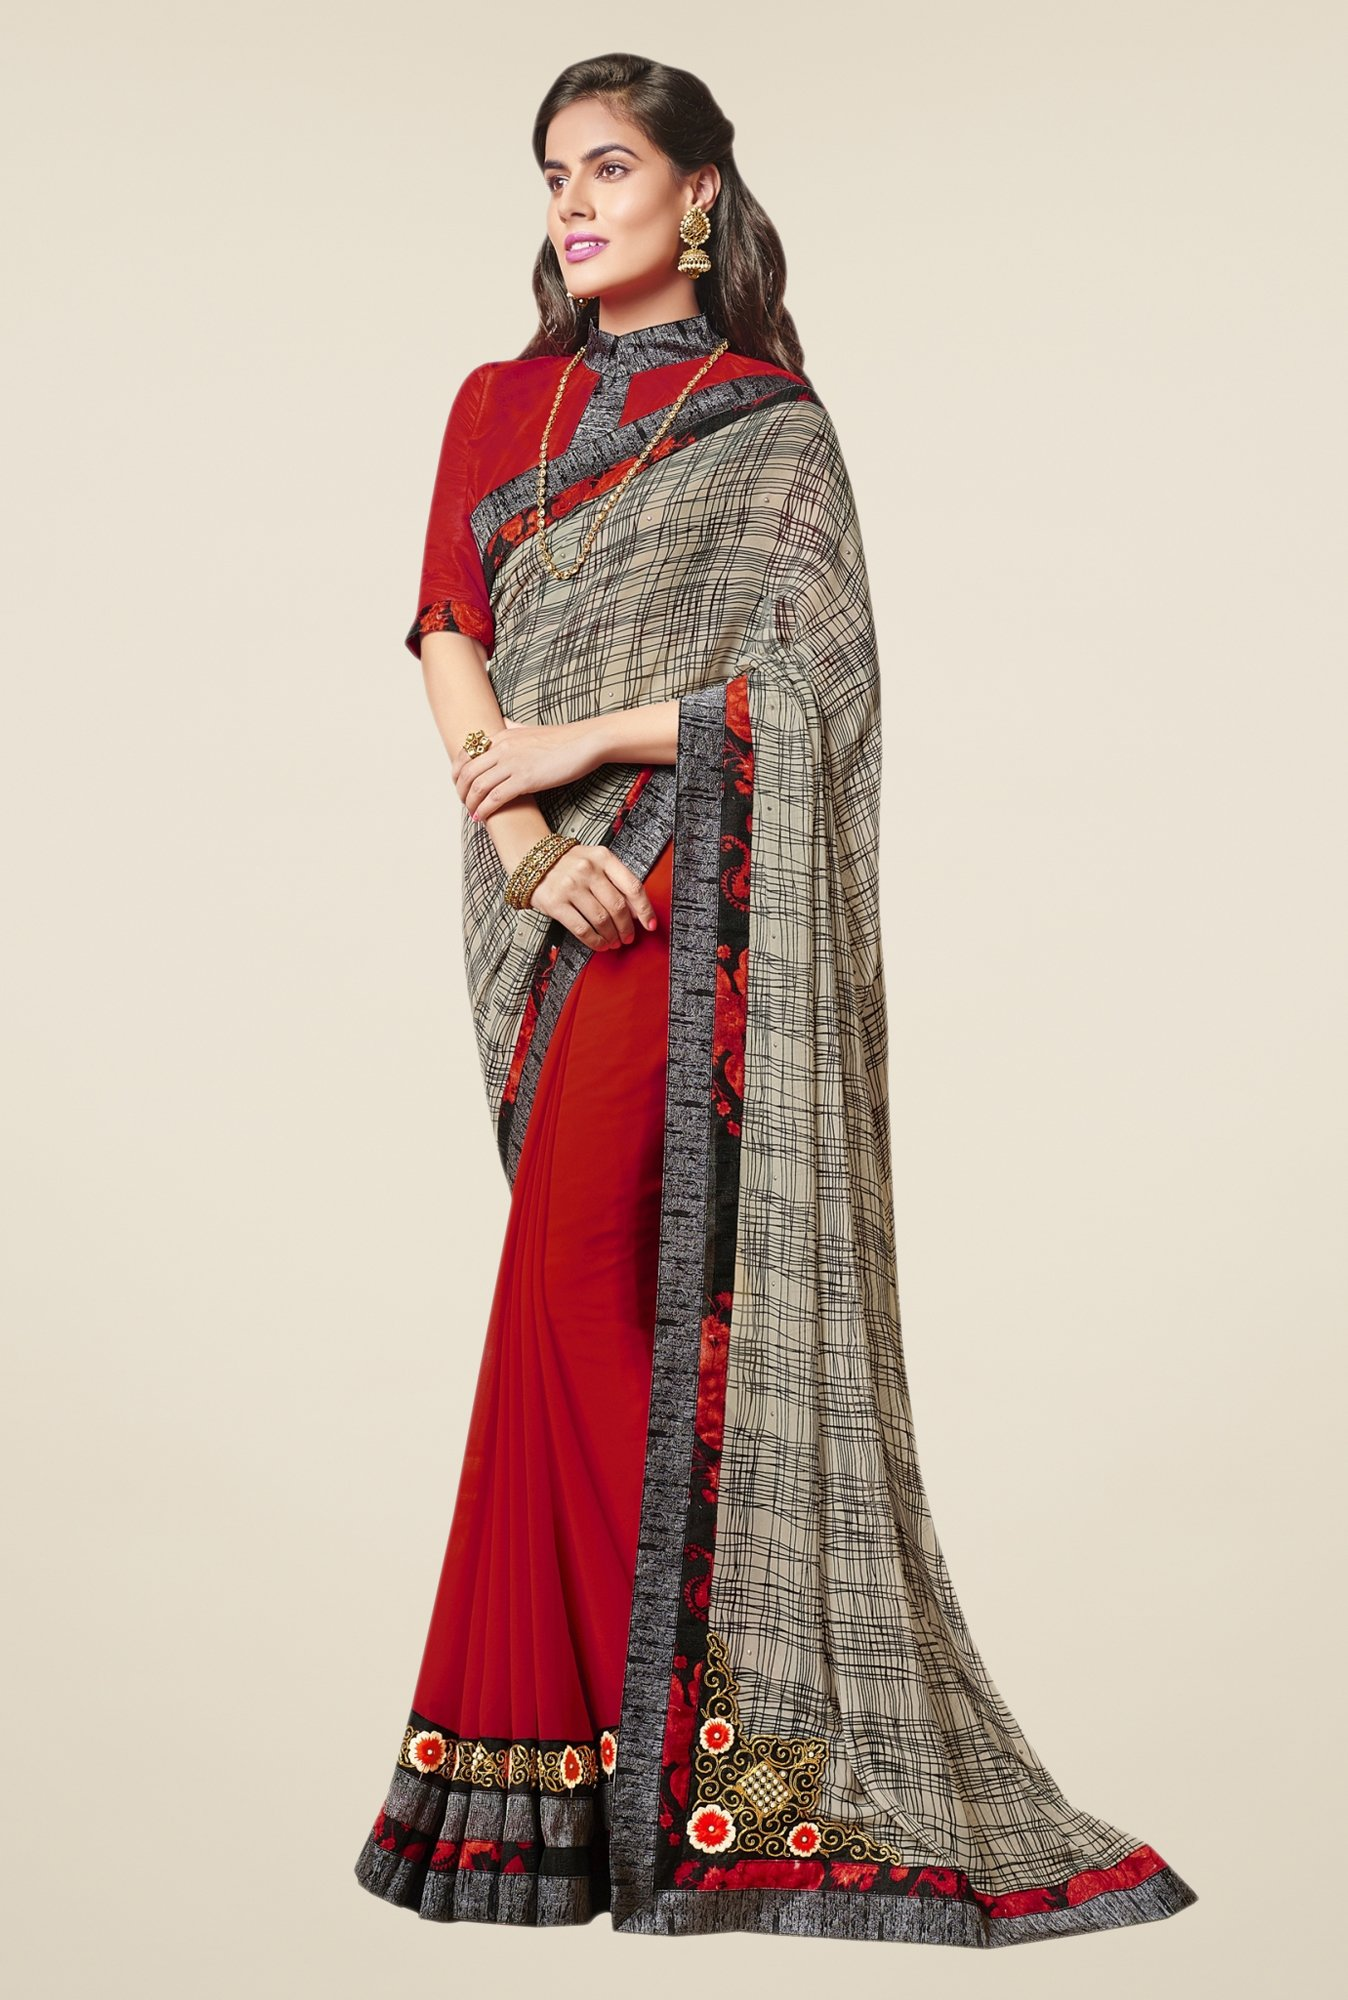 Triveni Fanciful Maroon & Beige Faux Georgette Saree